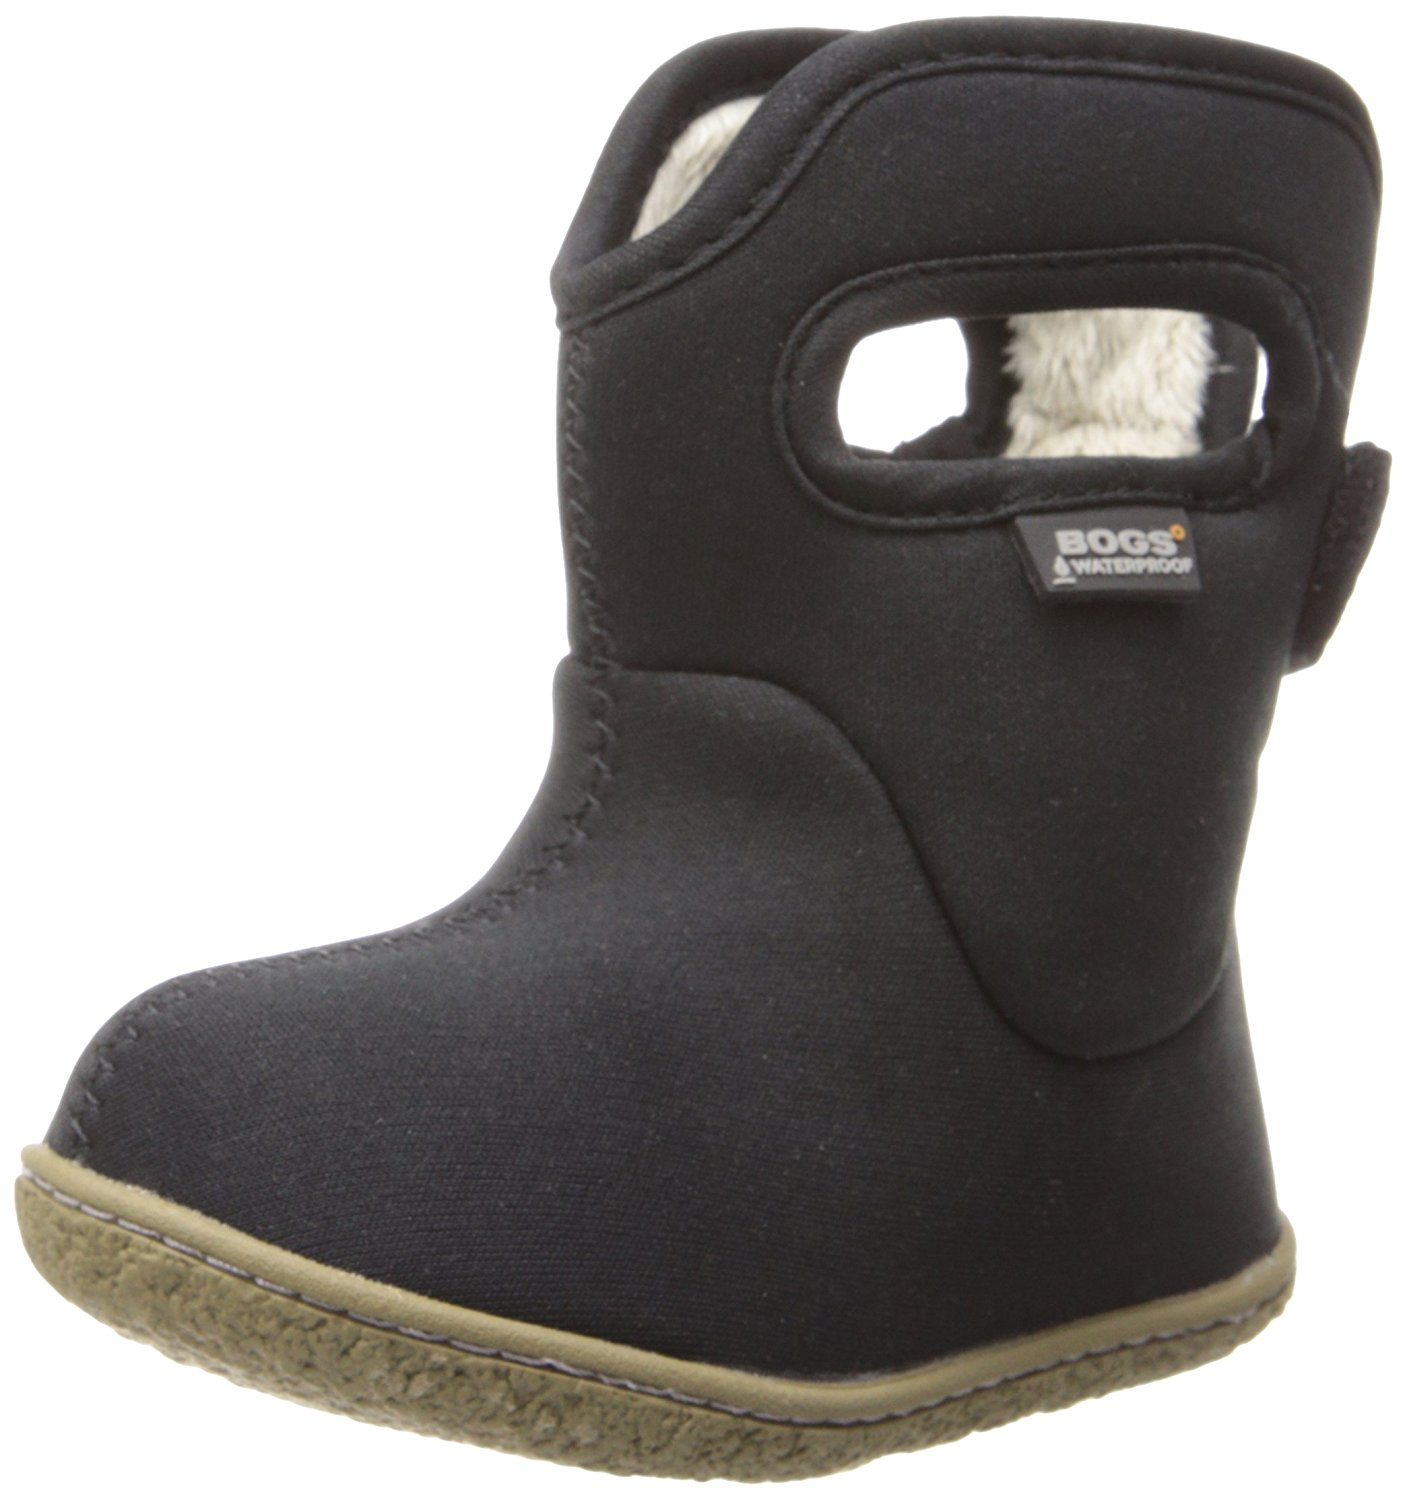 new styles 63e2c 2aaec Cheap Bogs Boots, find Bogs Boots deals on line at Alibaba.com